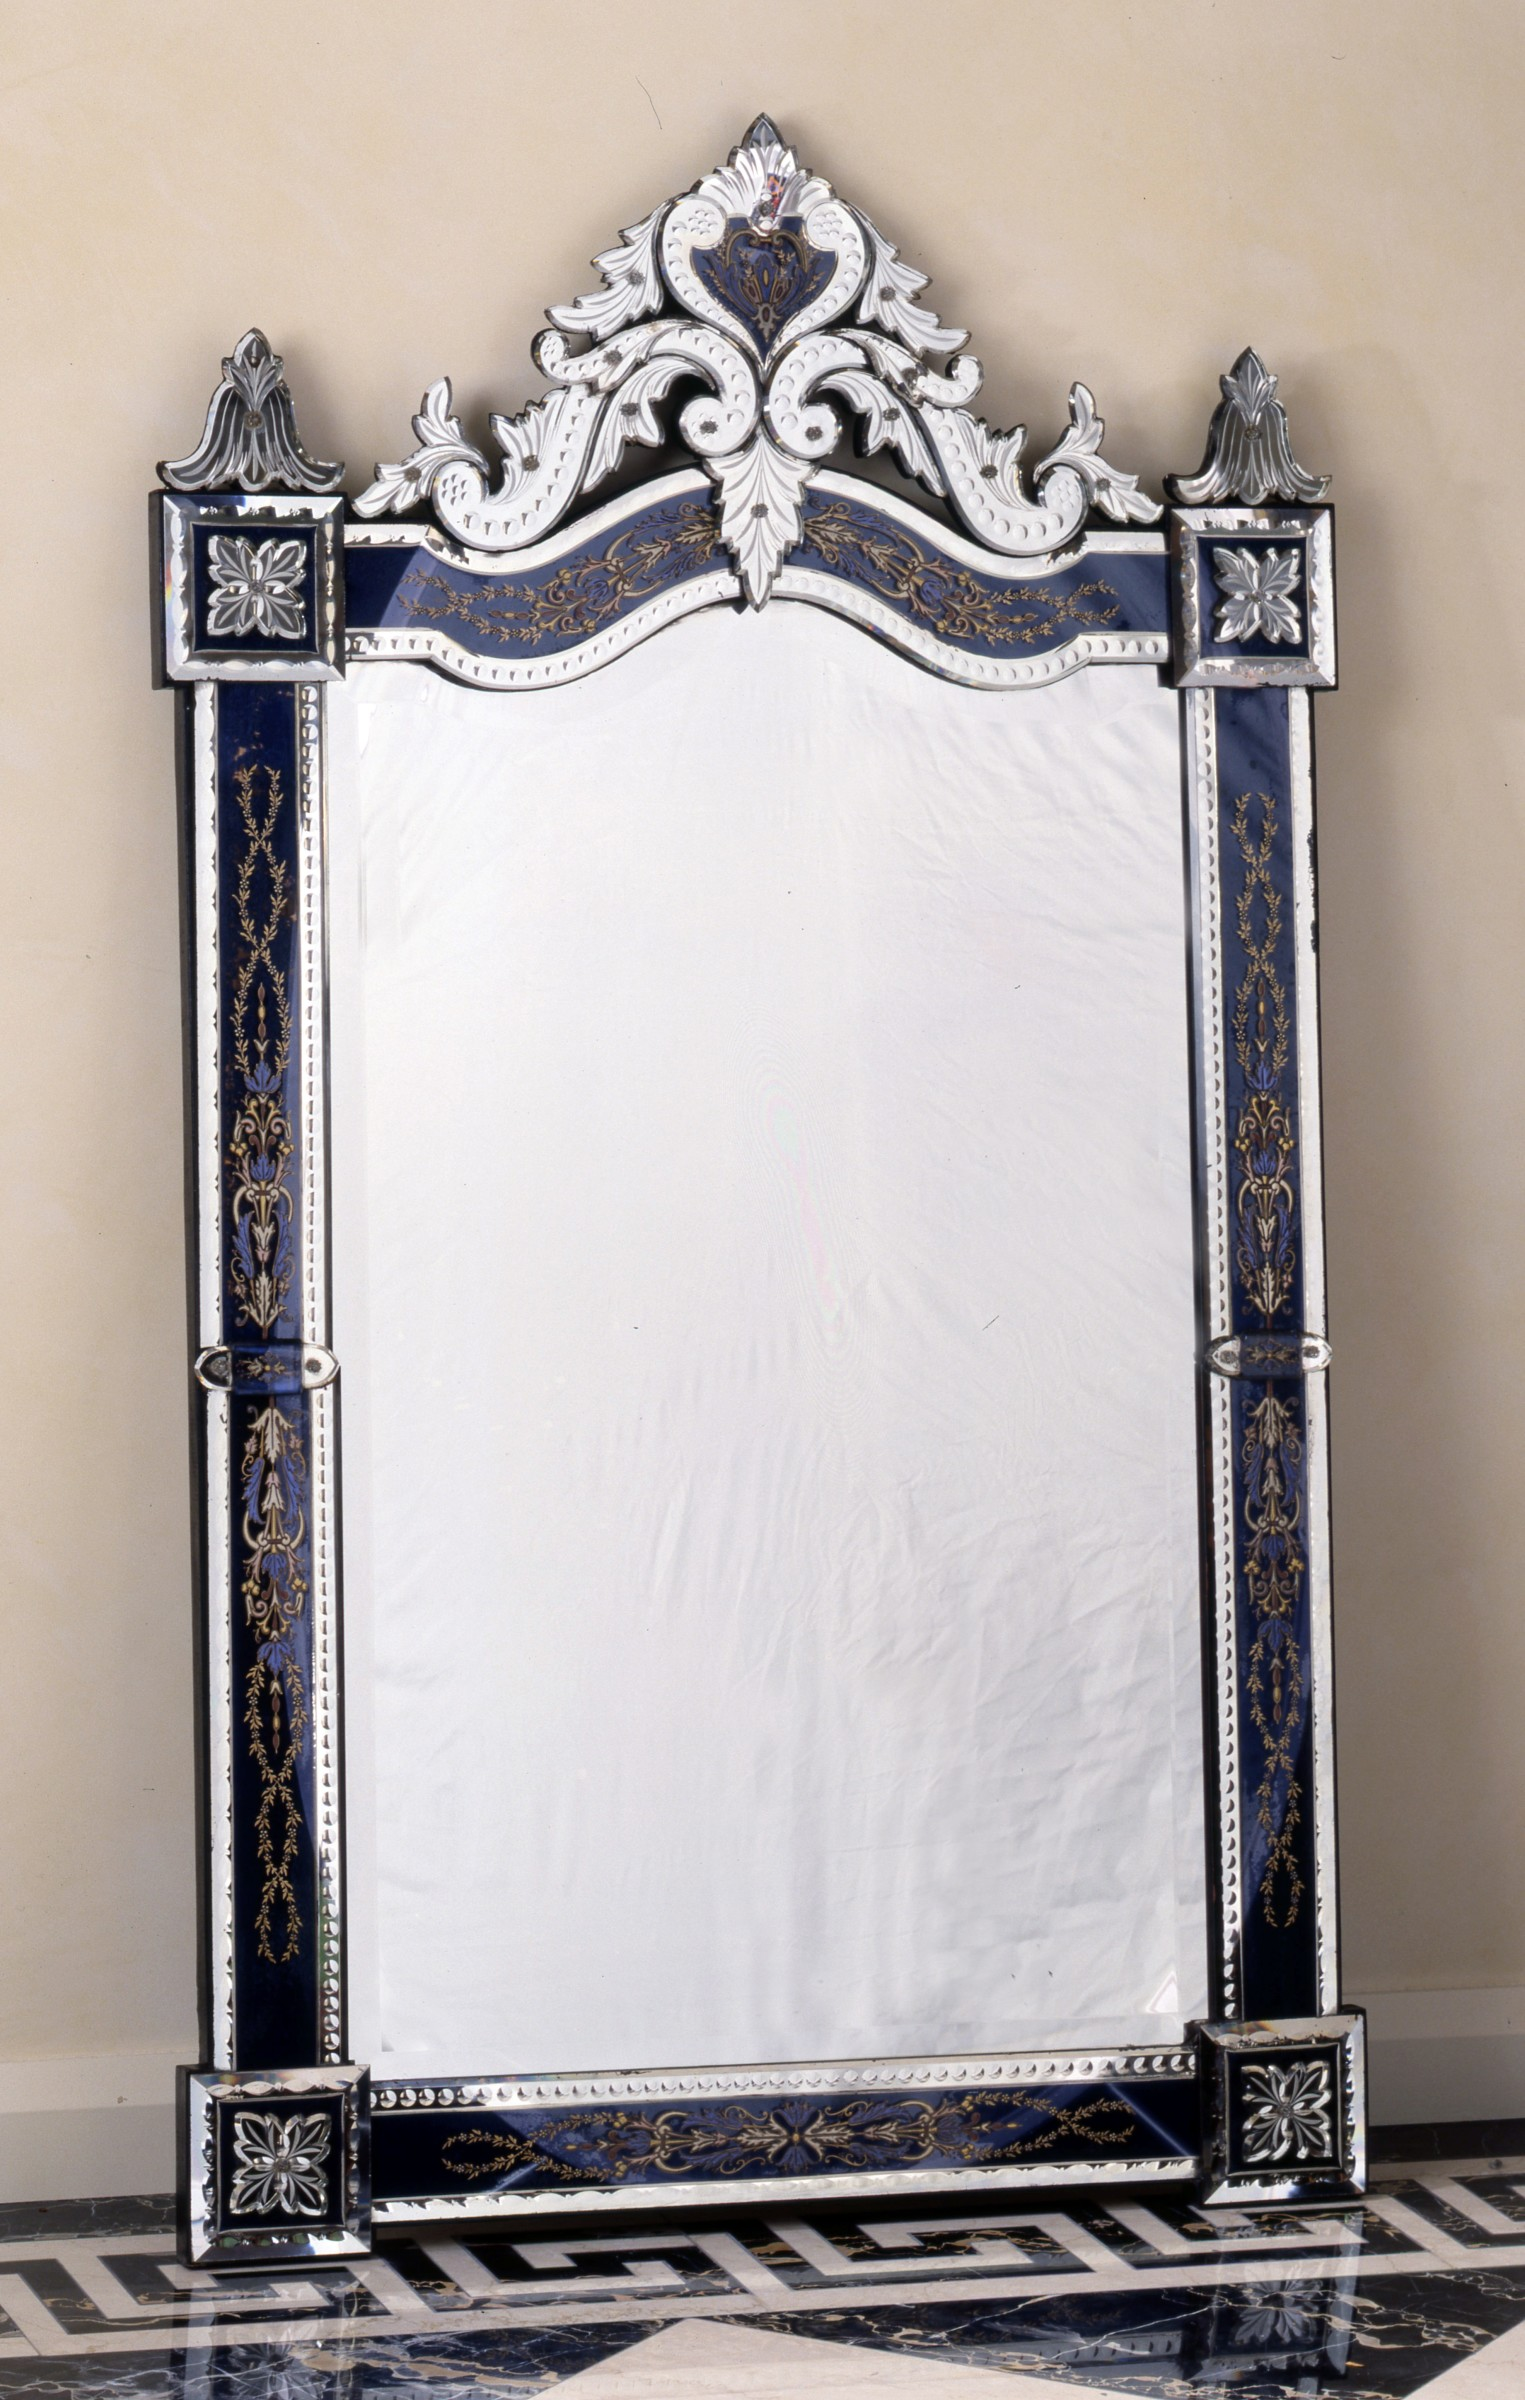 Murano A 19th Century Murano Venetian Wall Mirror Of Rectangular Form Murano Date Circa 1860 Richard Redding Antiques Ltd